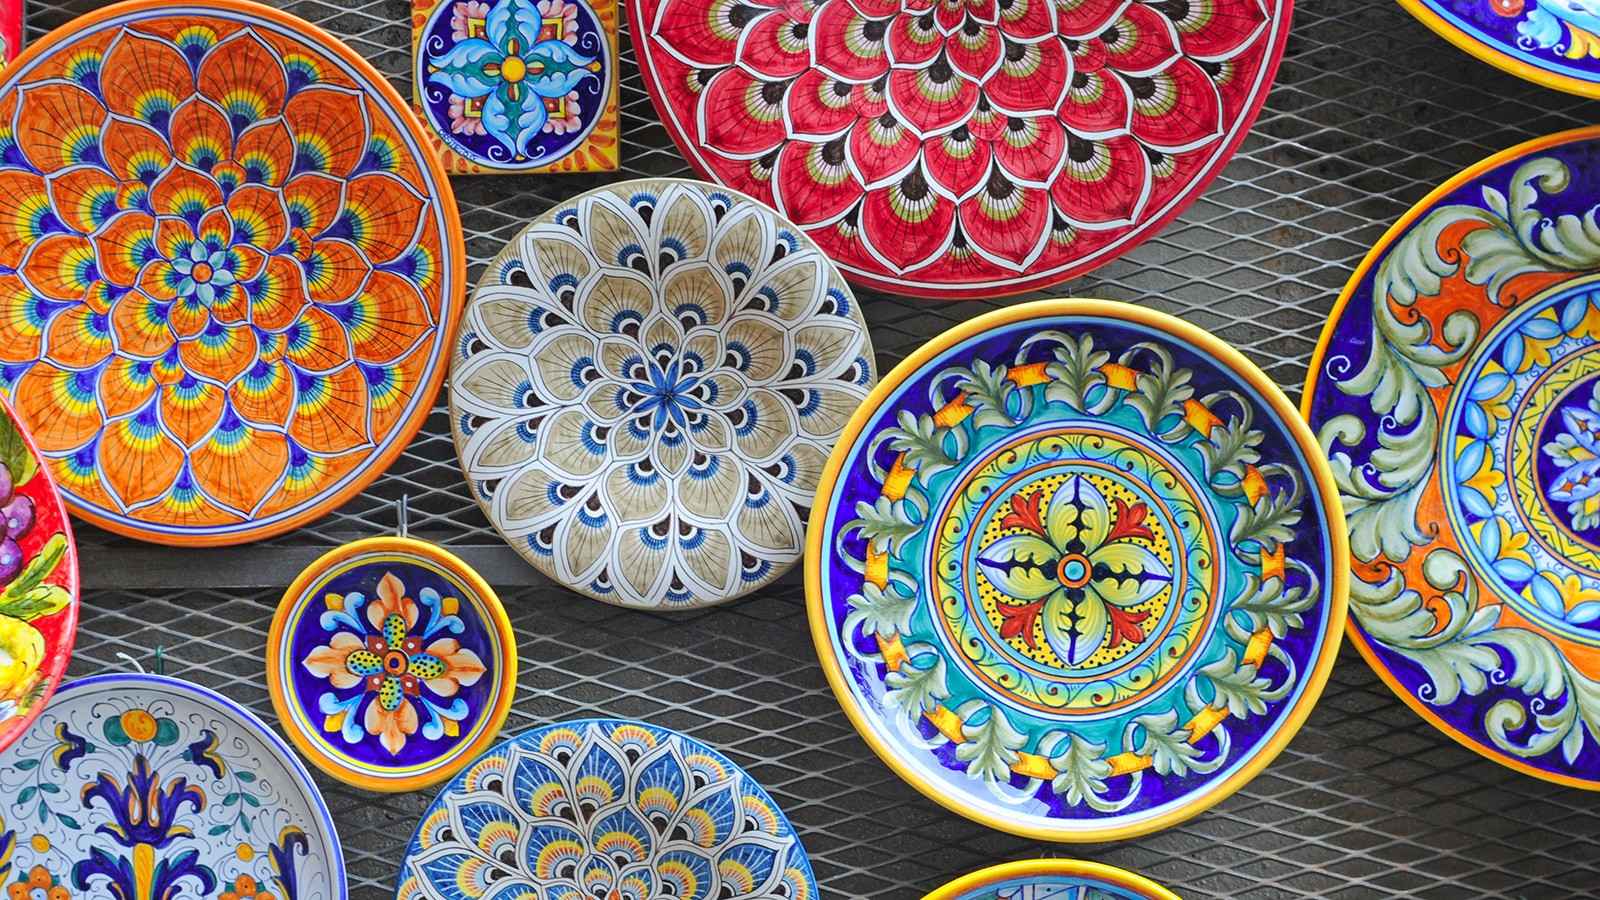 Italian folk art pottery bowls